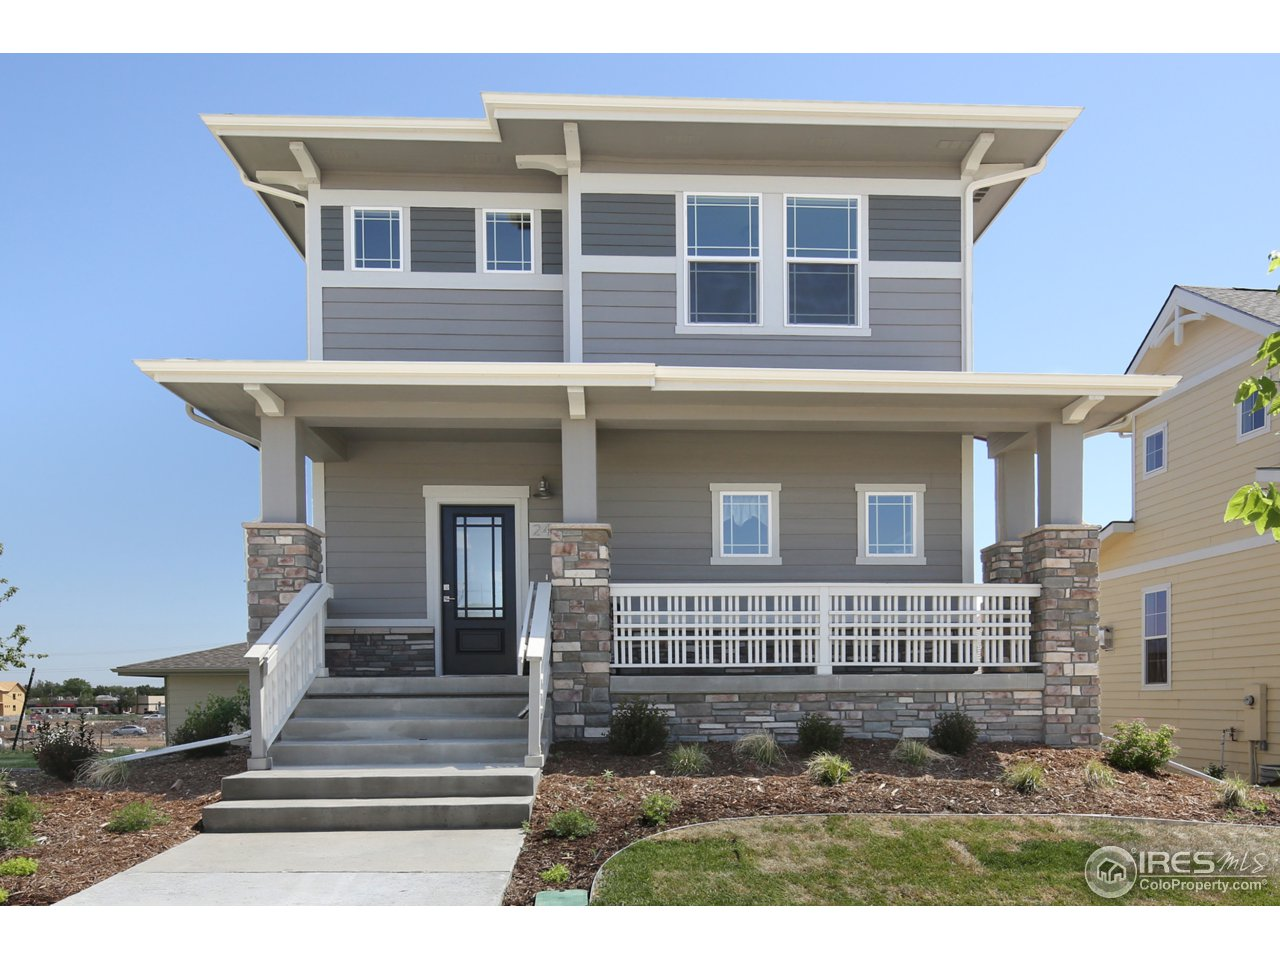 2414 Nancy Gray Ave, Fort Collins, CO 80525